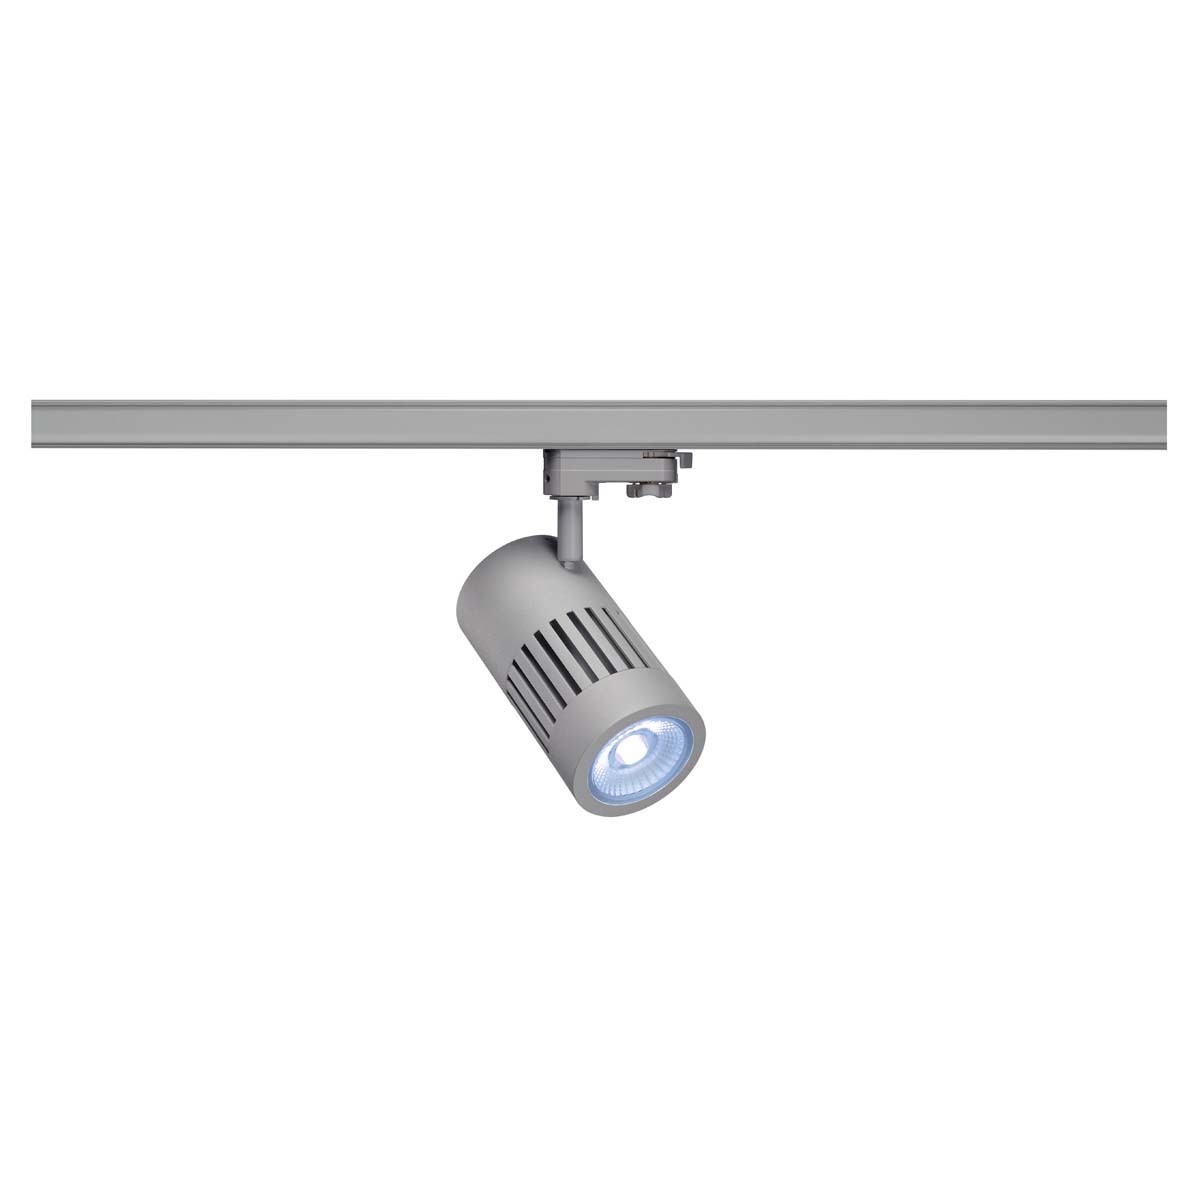 SLV 176034 STRUCTEC LED 24W, round, silver, 4000K, 60°, incl. 3-phase adapter